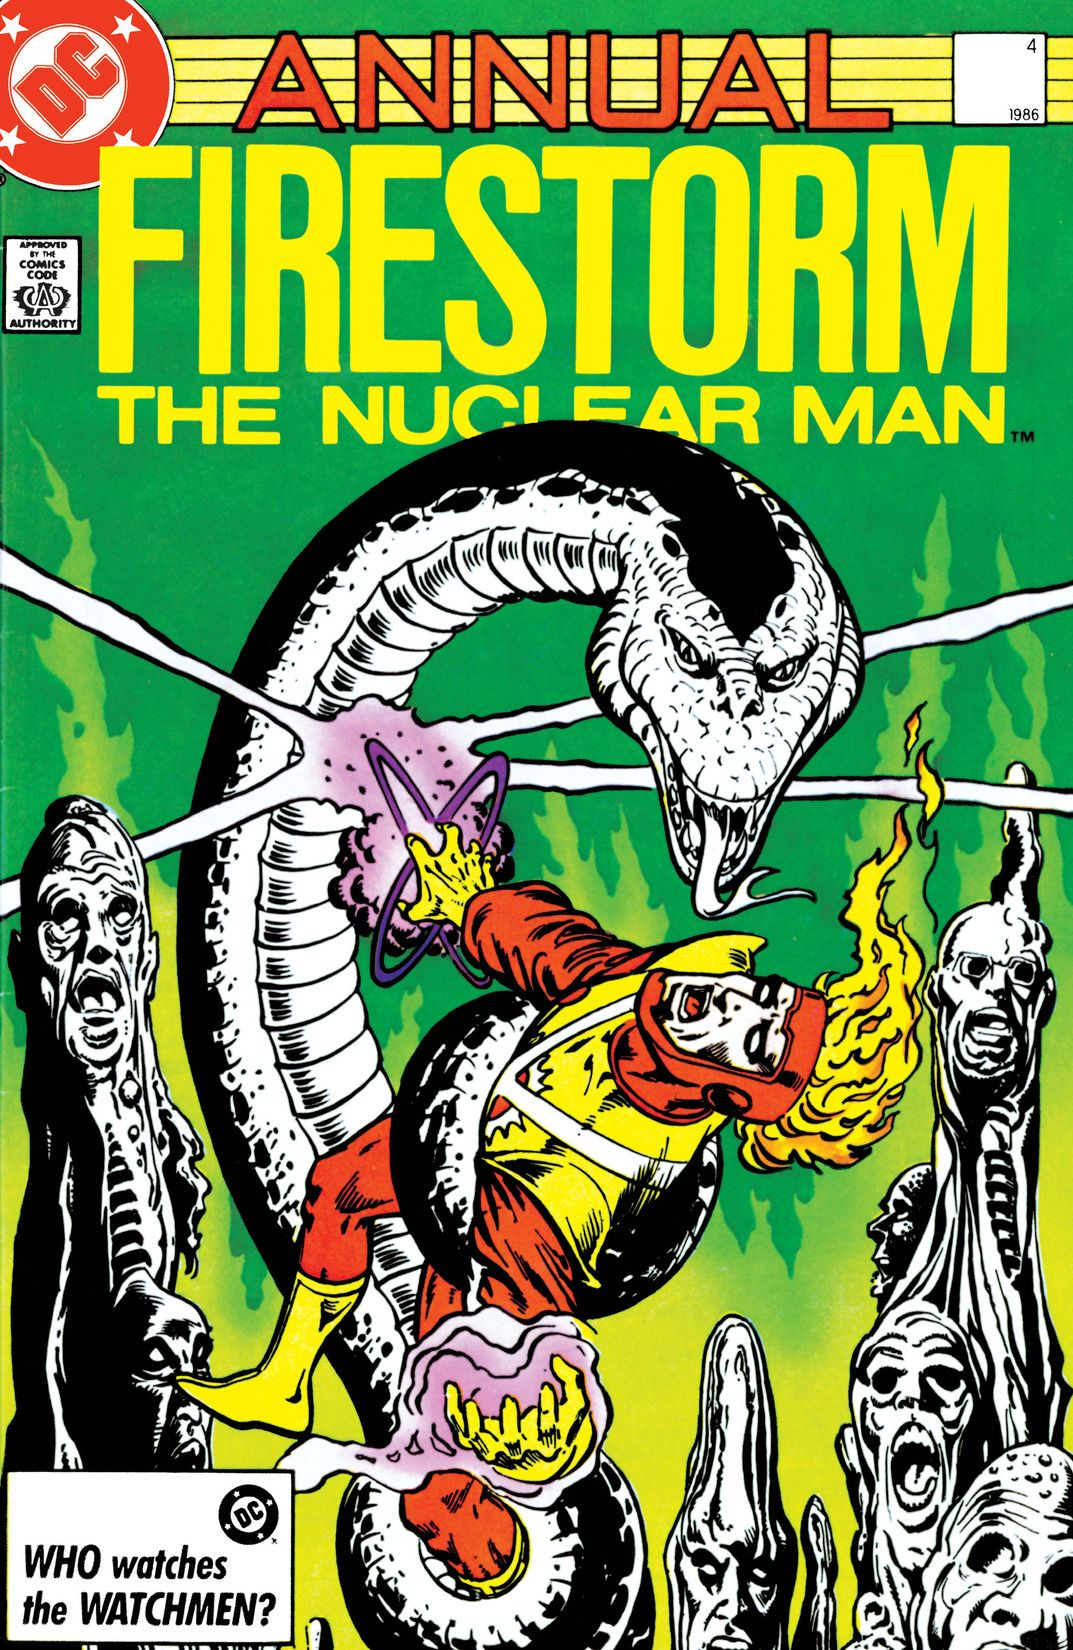 Fury of Firestorm Annual #4 by Gerry Conway, Rafael Kayanan, Dick Giordano, Gene Colan, Curt Swan, Martin King, Kieth Giffen, Al Migrom and Steve Mitchell; cover by Denys Cowan